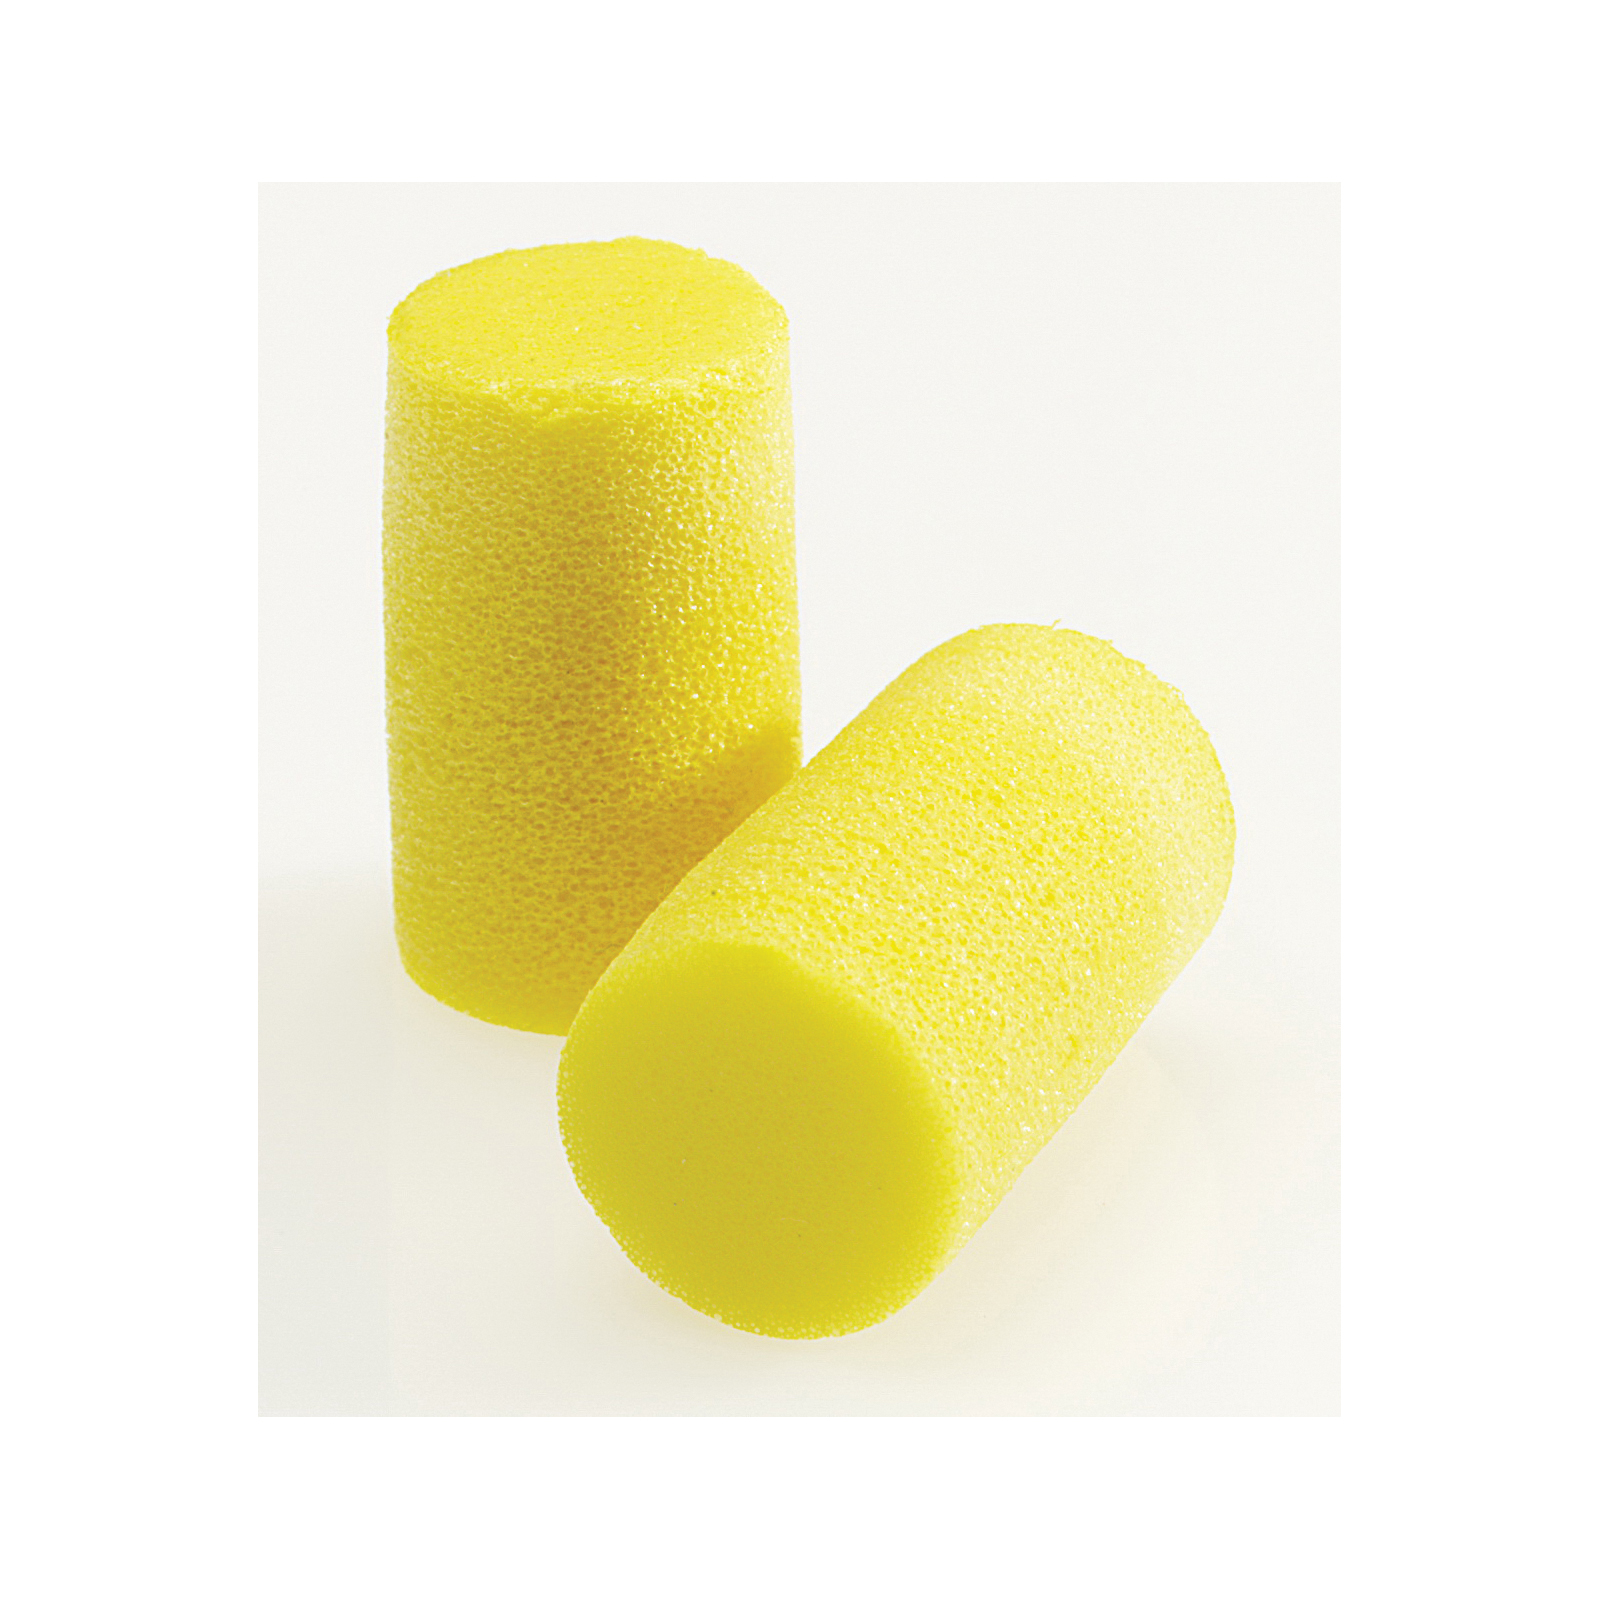 3M™ E-A-R™ Classic™ 080529-10051 Earplugs, 33 dB Noise Reduction, Cylindrical Shape, CSA Class AL, Disposable, Uncorded Design